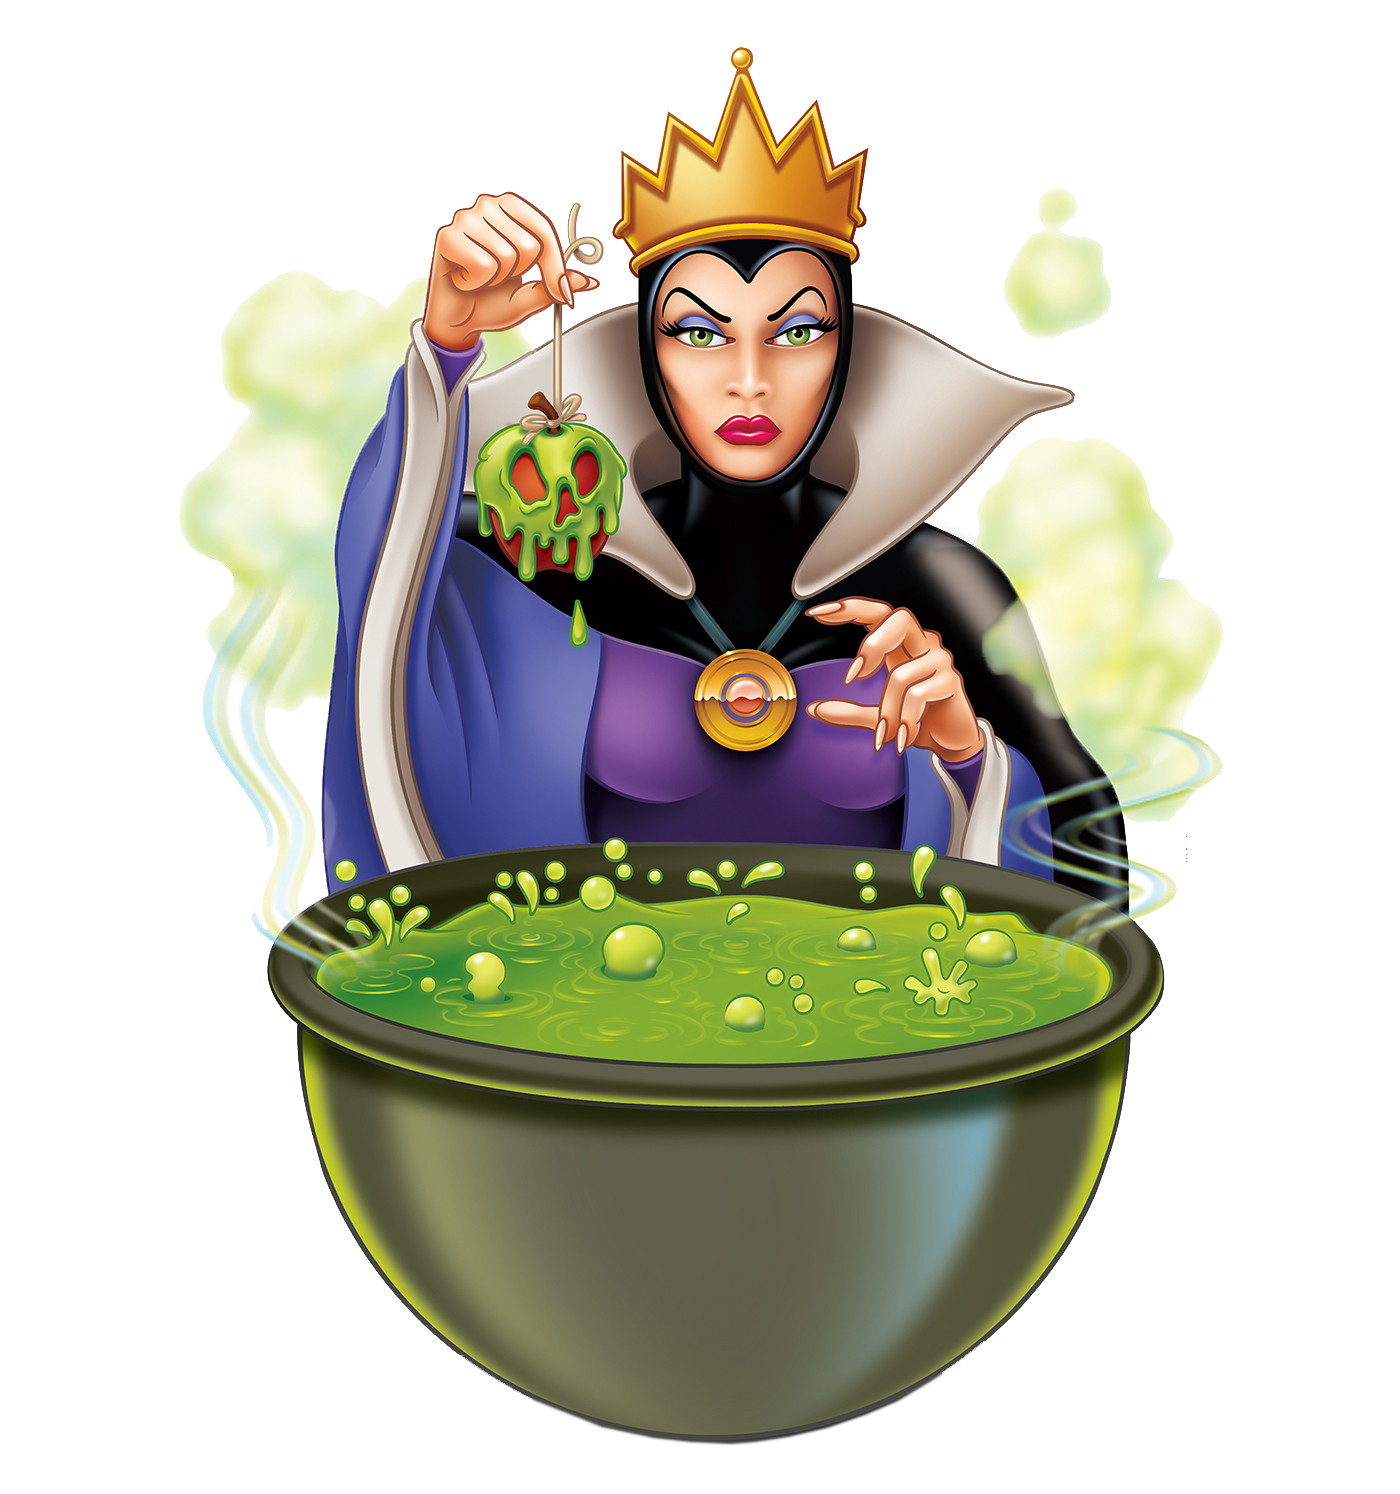 Jokingart com download evil. Queen clipart snow white witch